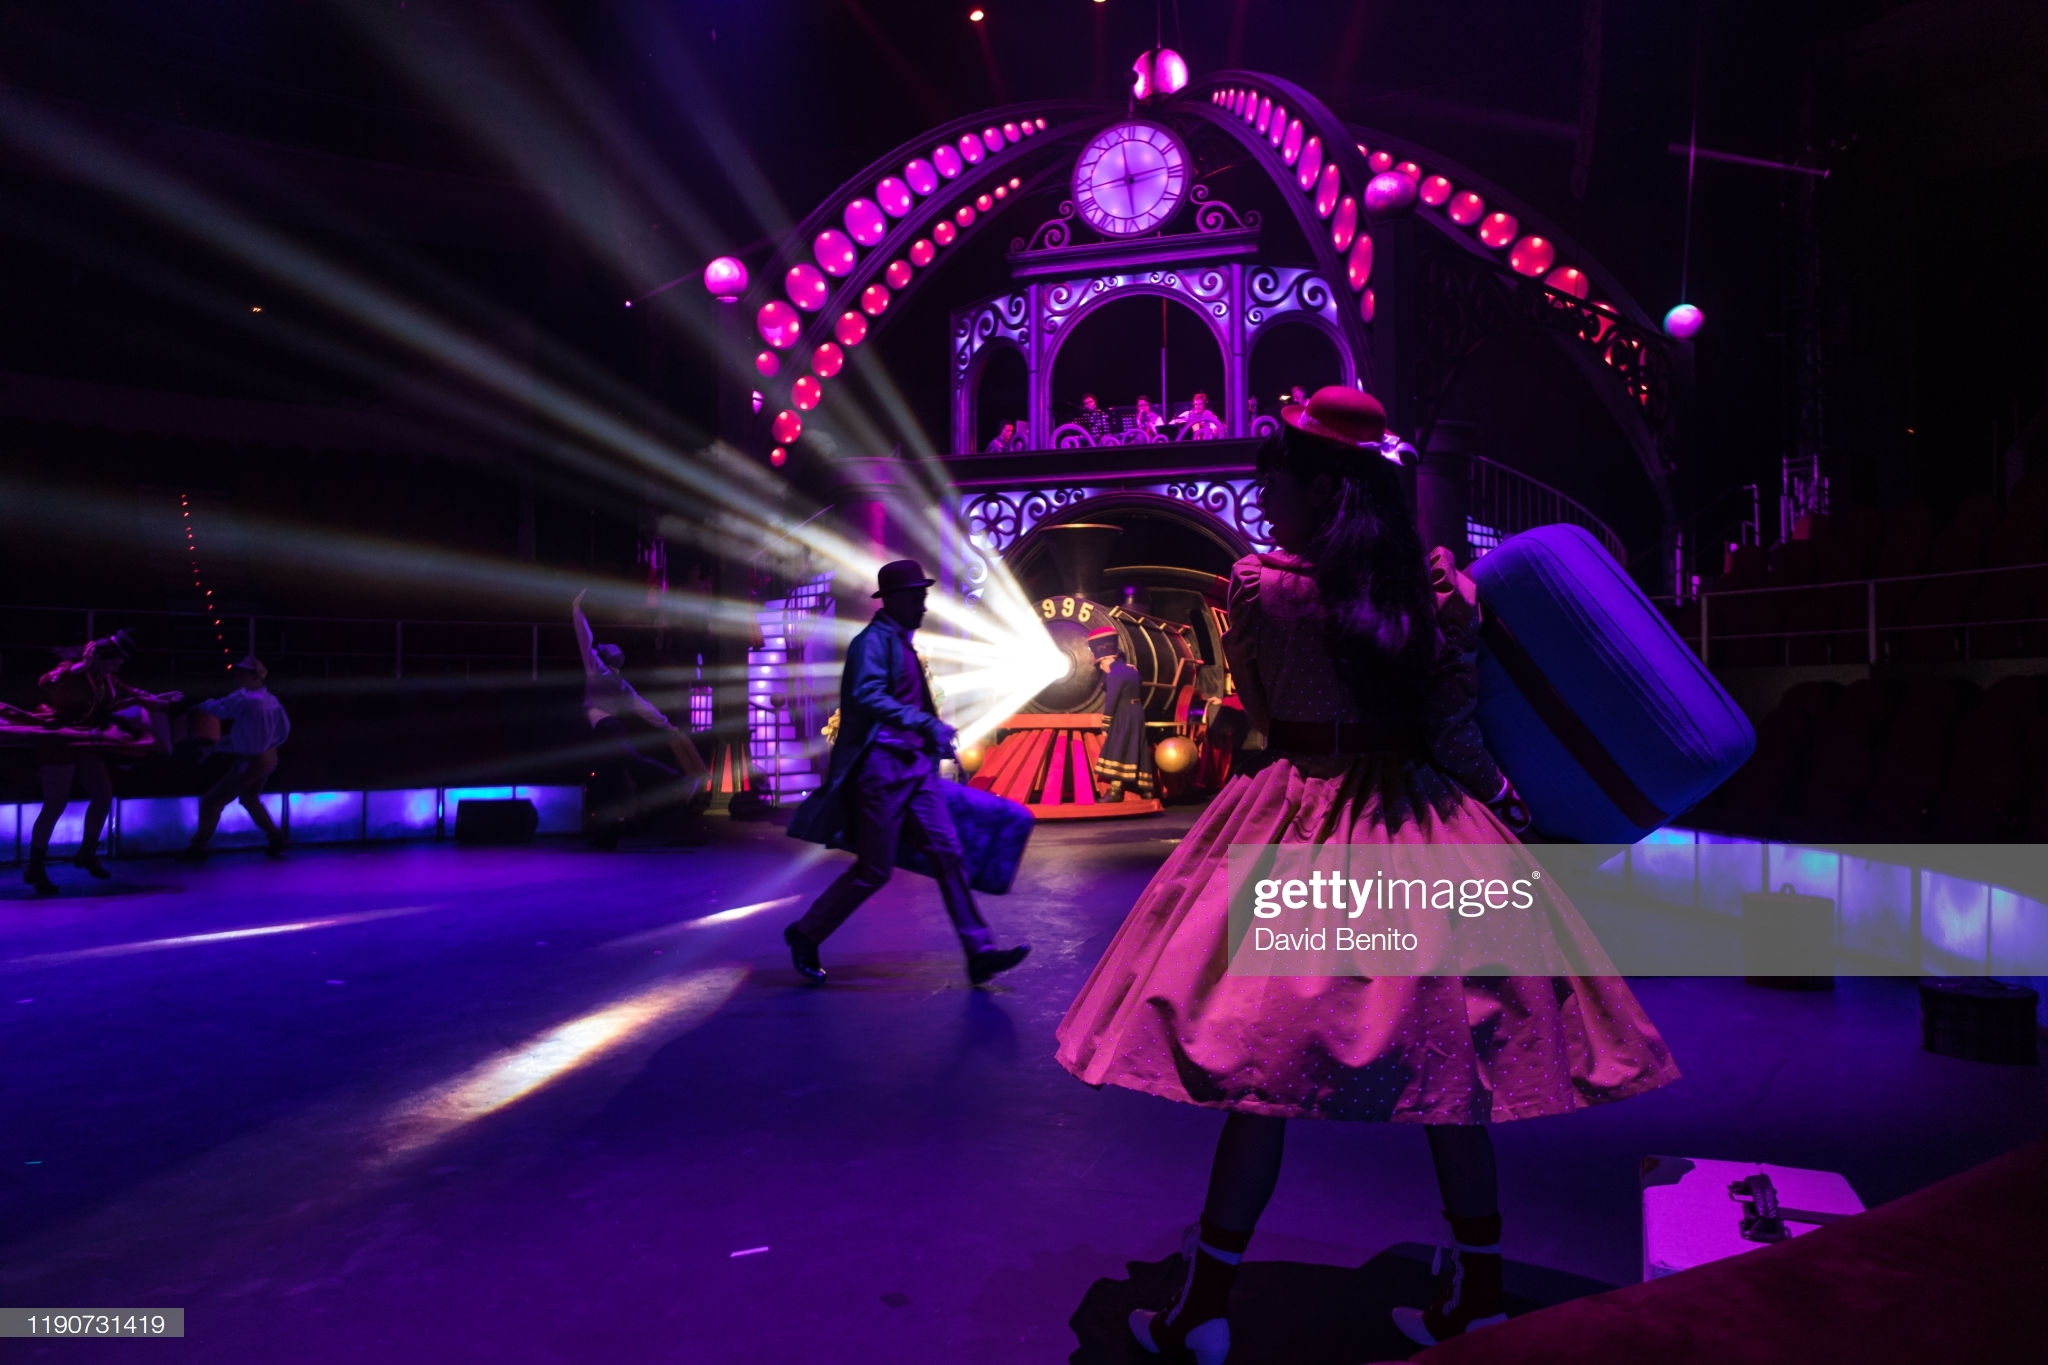 gettyimages-1190731419-2048x2048